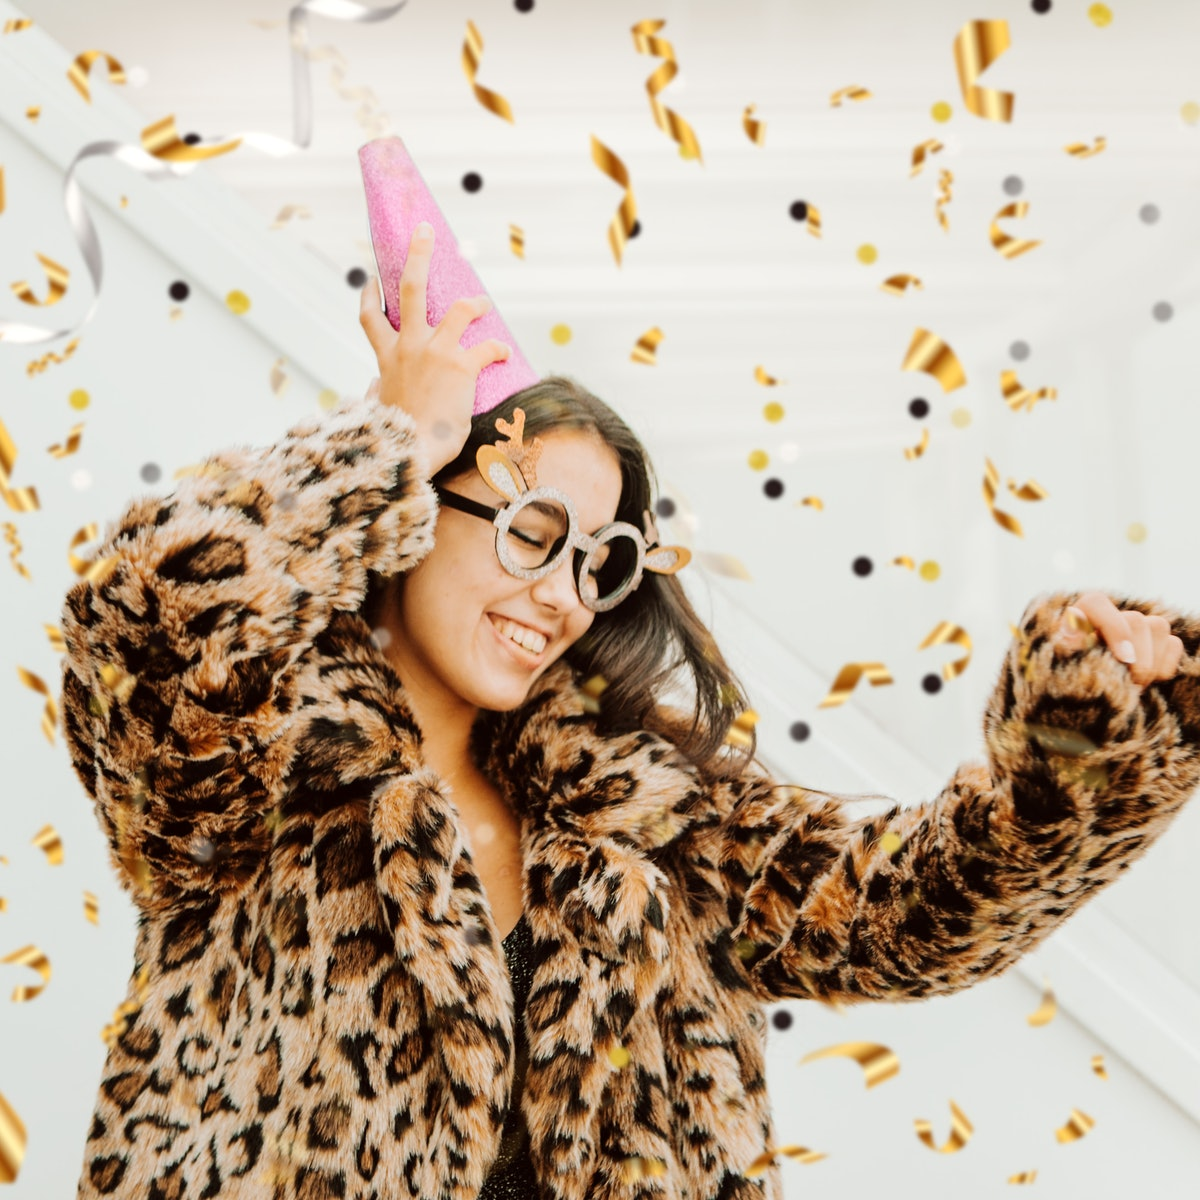 A young woman dancing in a gorgeous New Year's Eve dress and leopard print coat, thinking of the best Instagram caption for her dress.